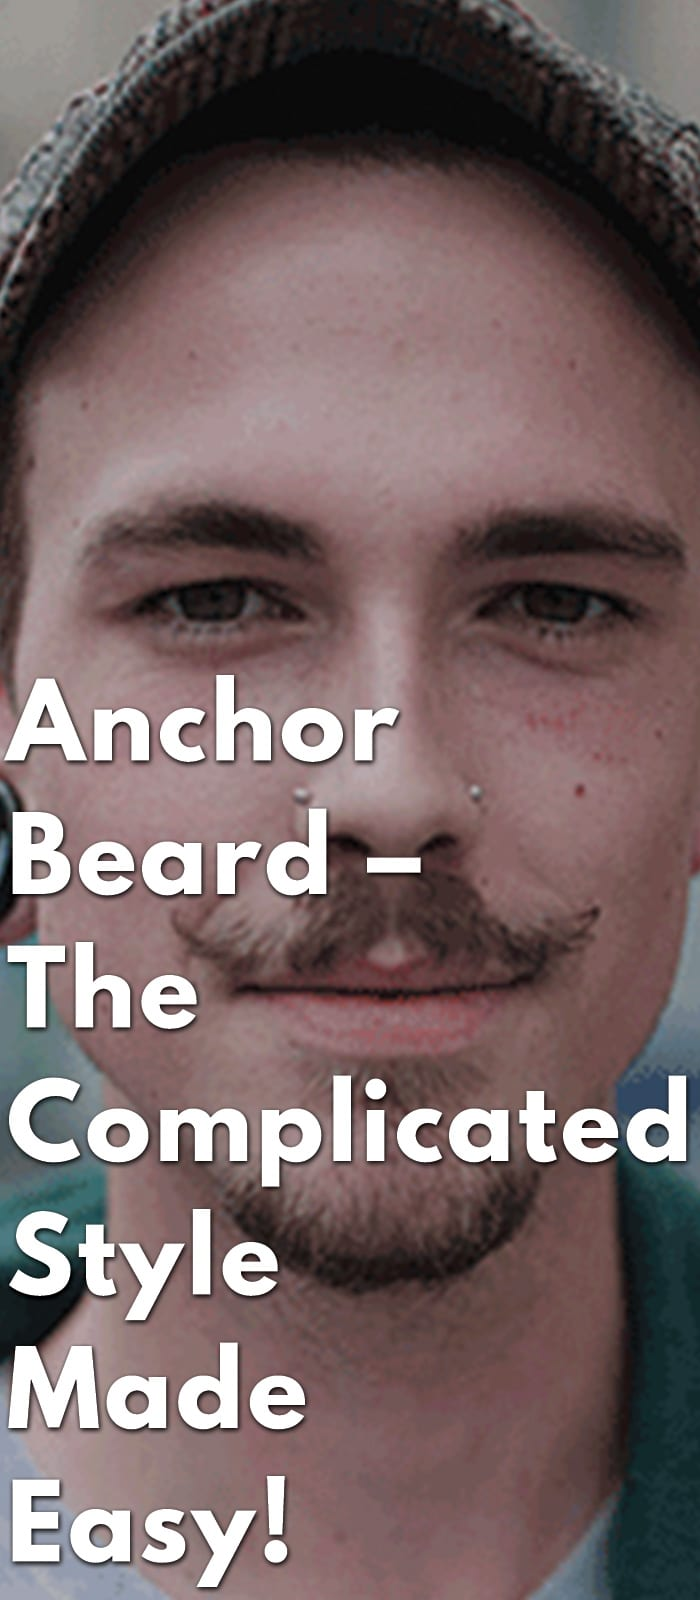 Anchor-Beard-–-The-Complicated-Style-Made-Easy!.